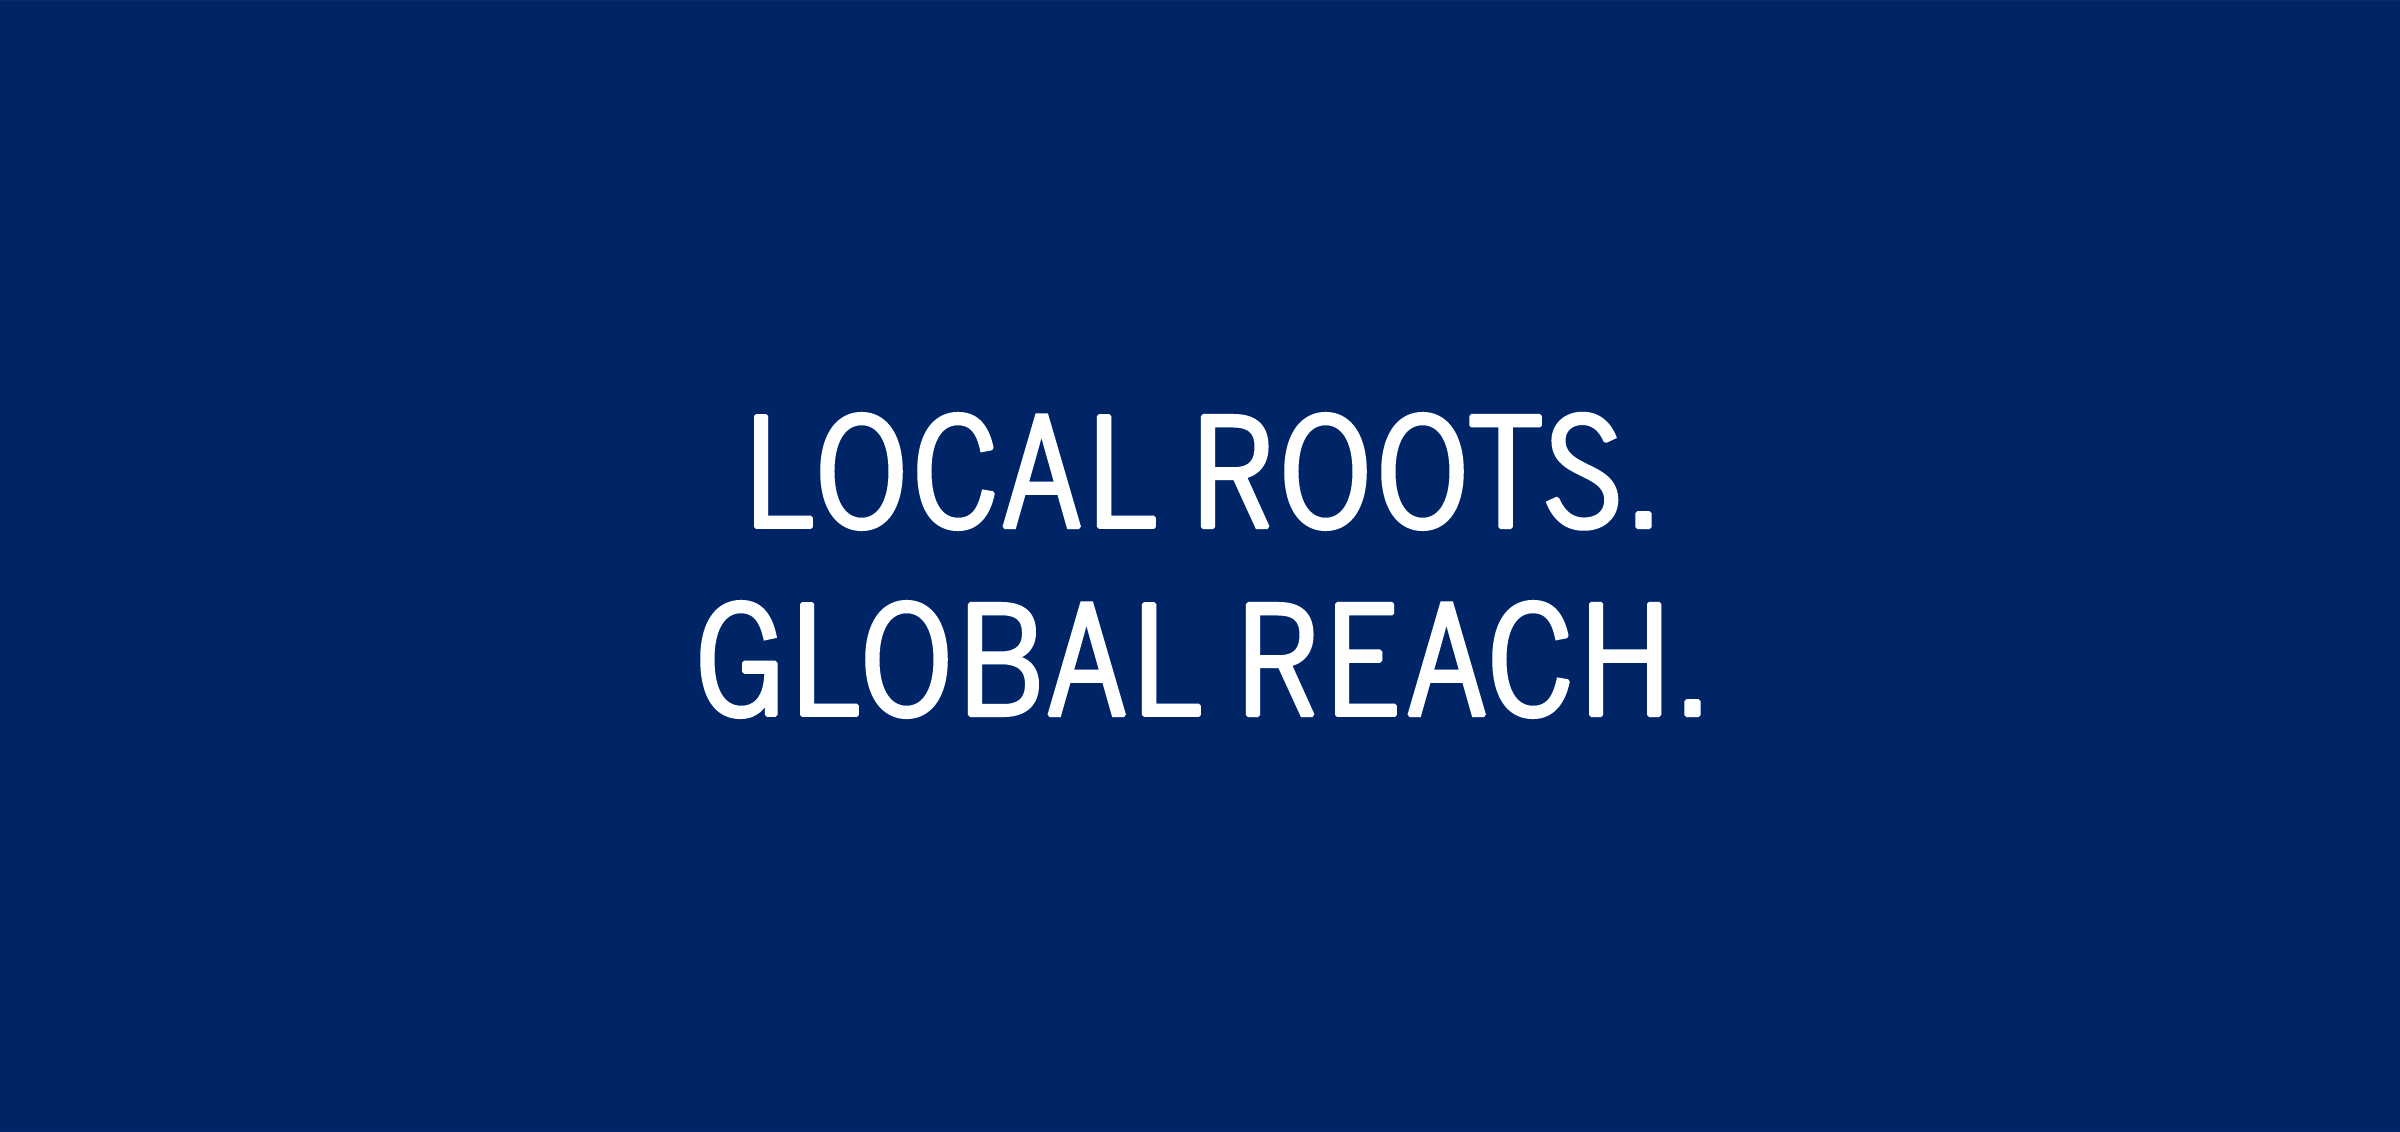 LOCAL ROOTS. GLOBAL REACH.